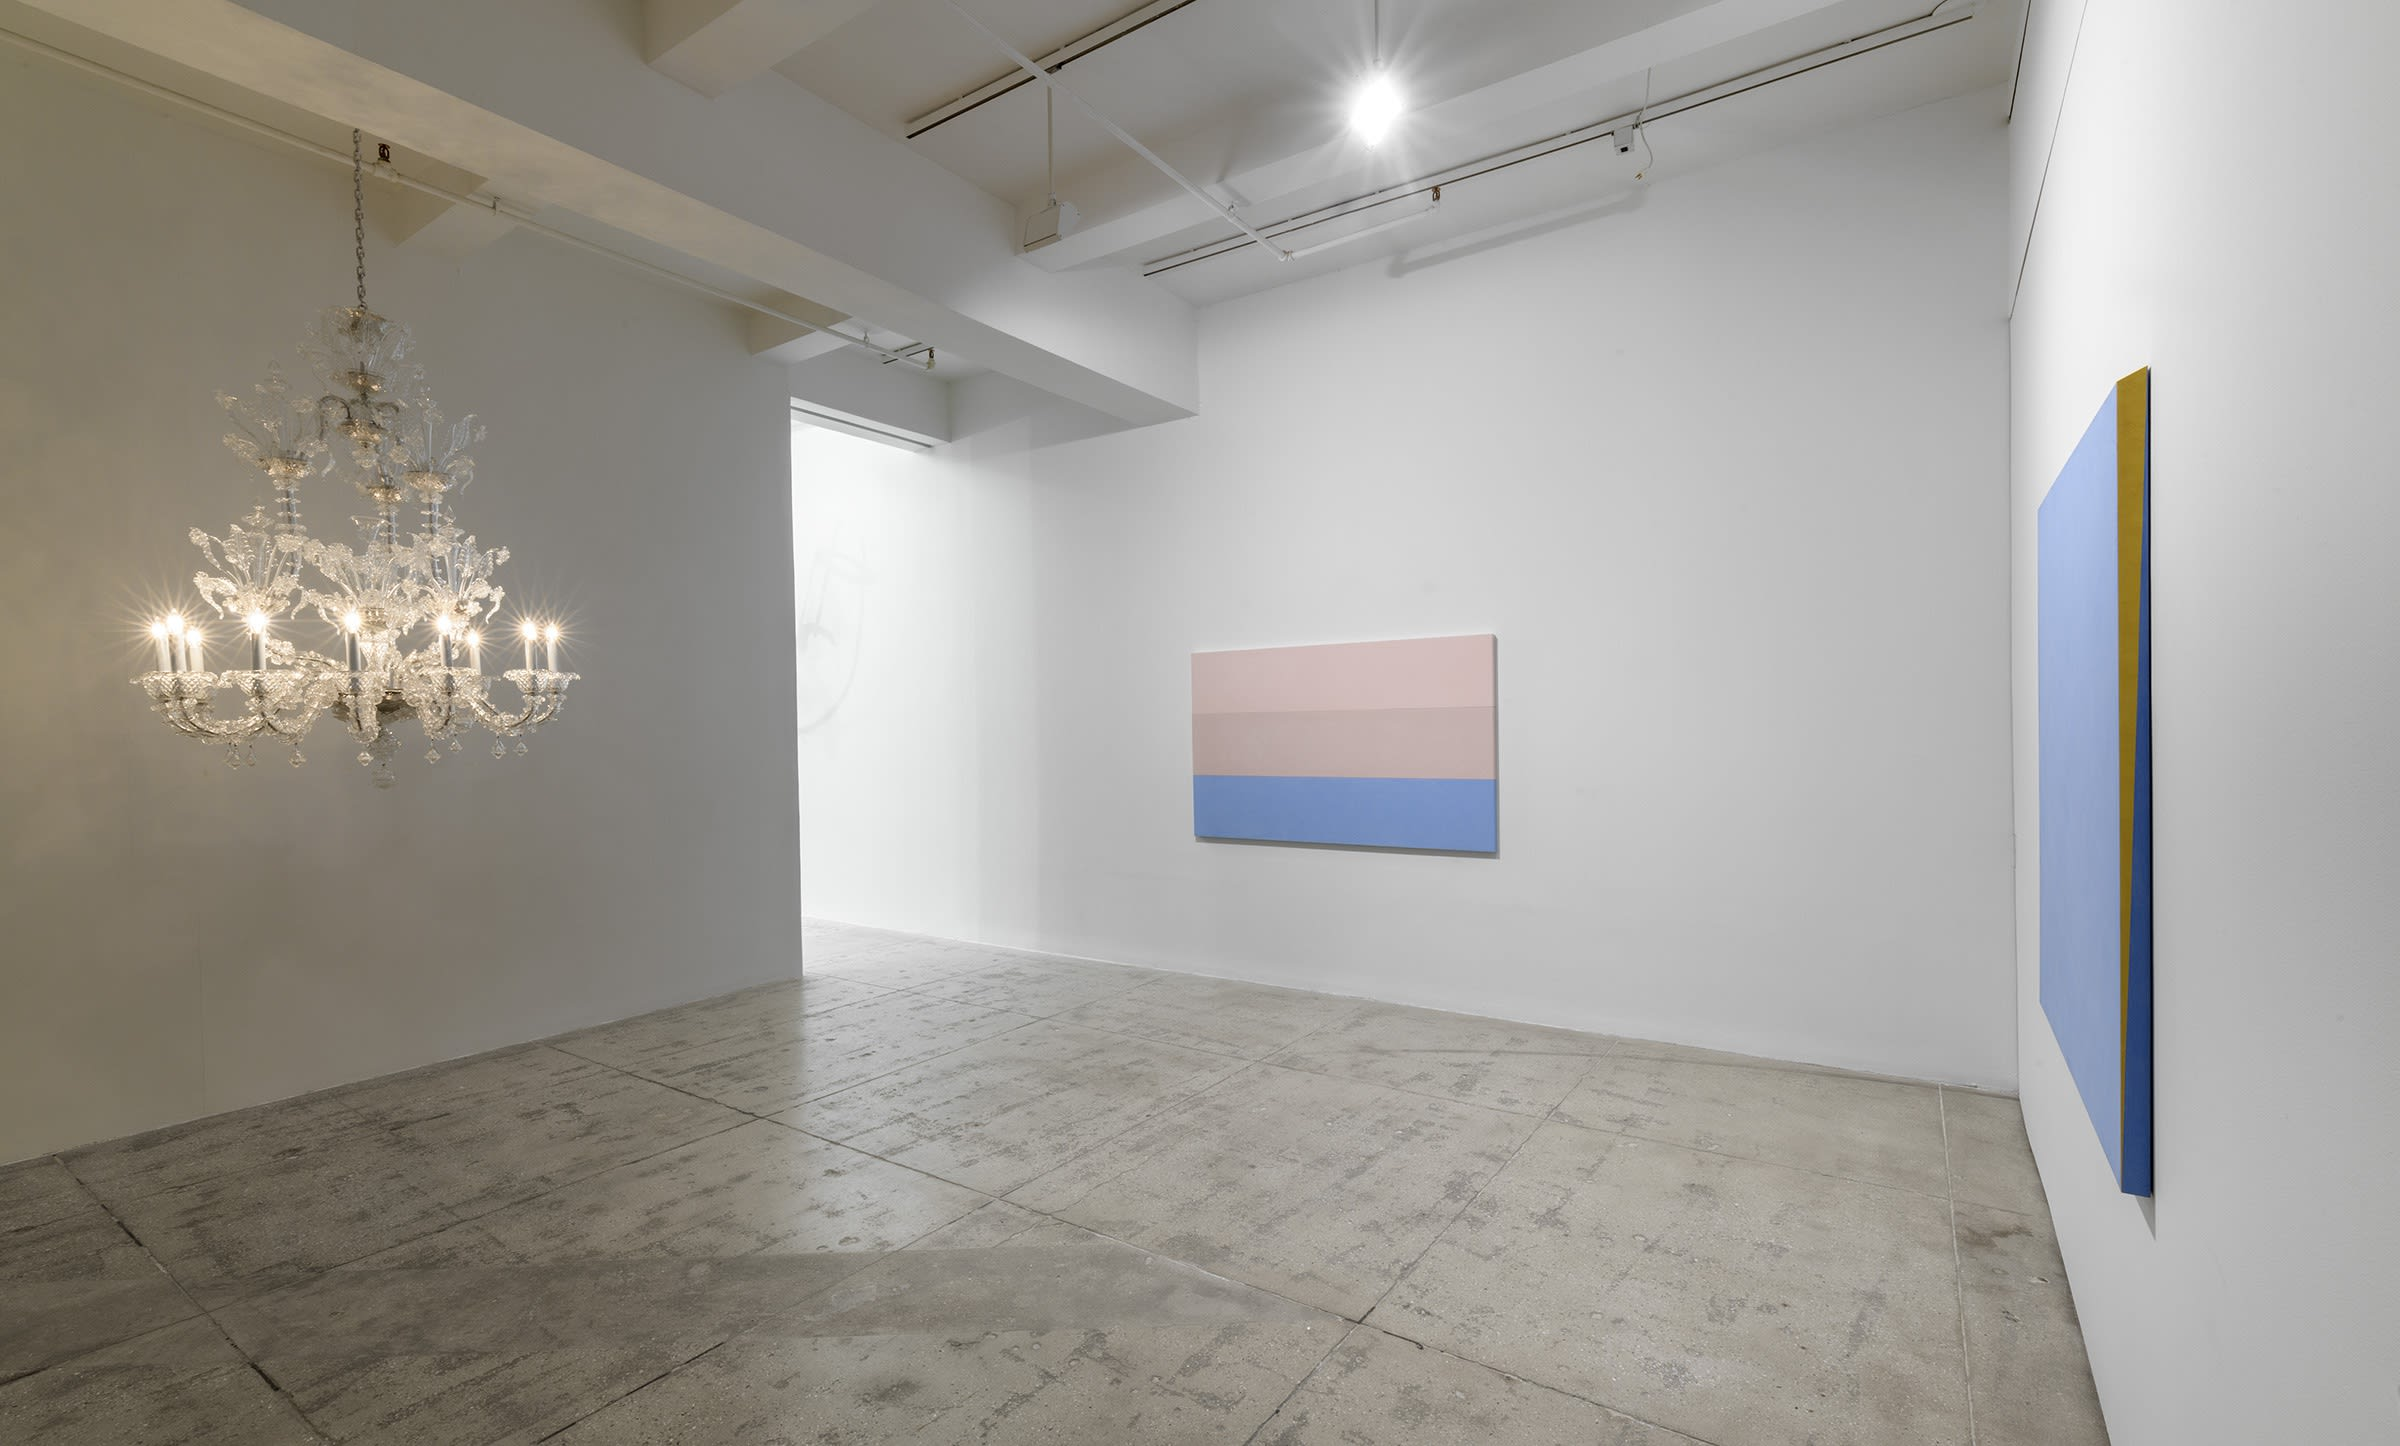 2 blue and pink paintings hang in the gallery; there is a chandelier hanging from the ceiling to the left.